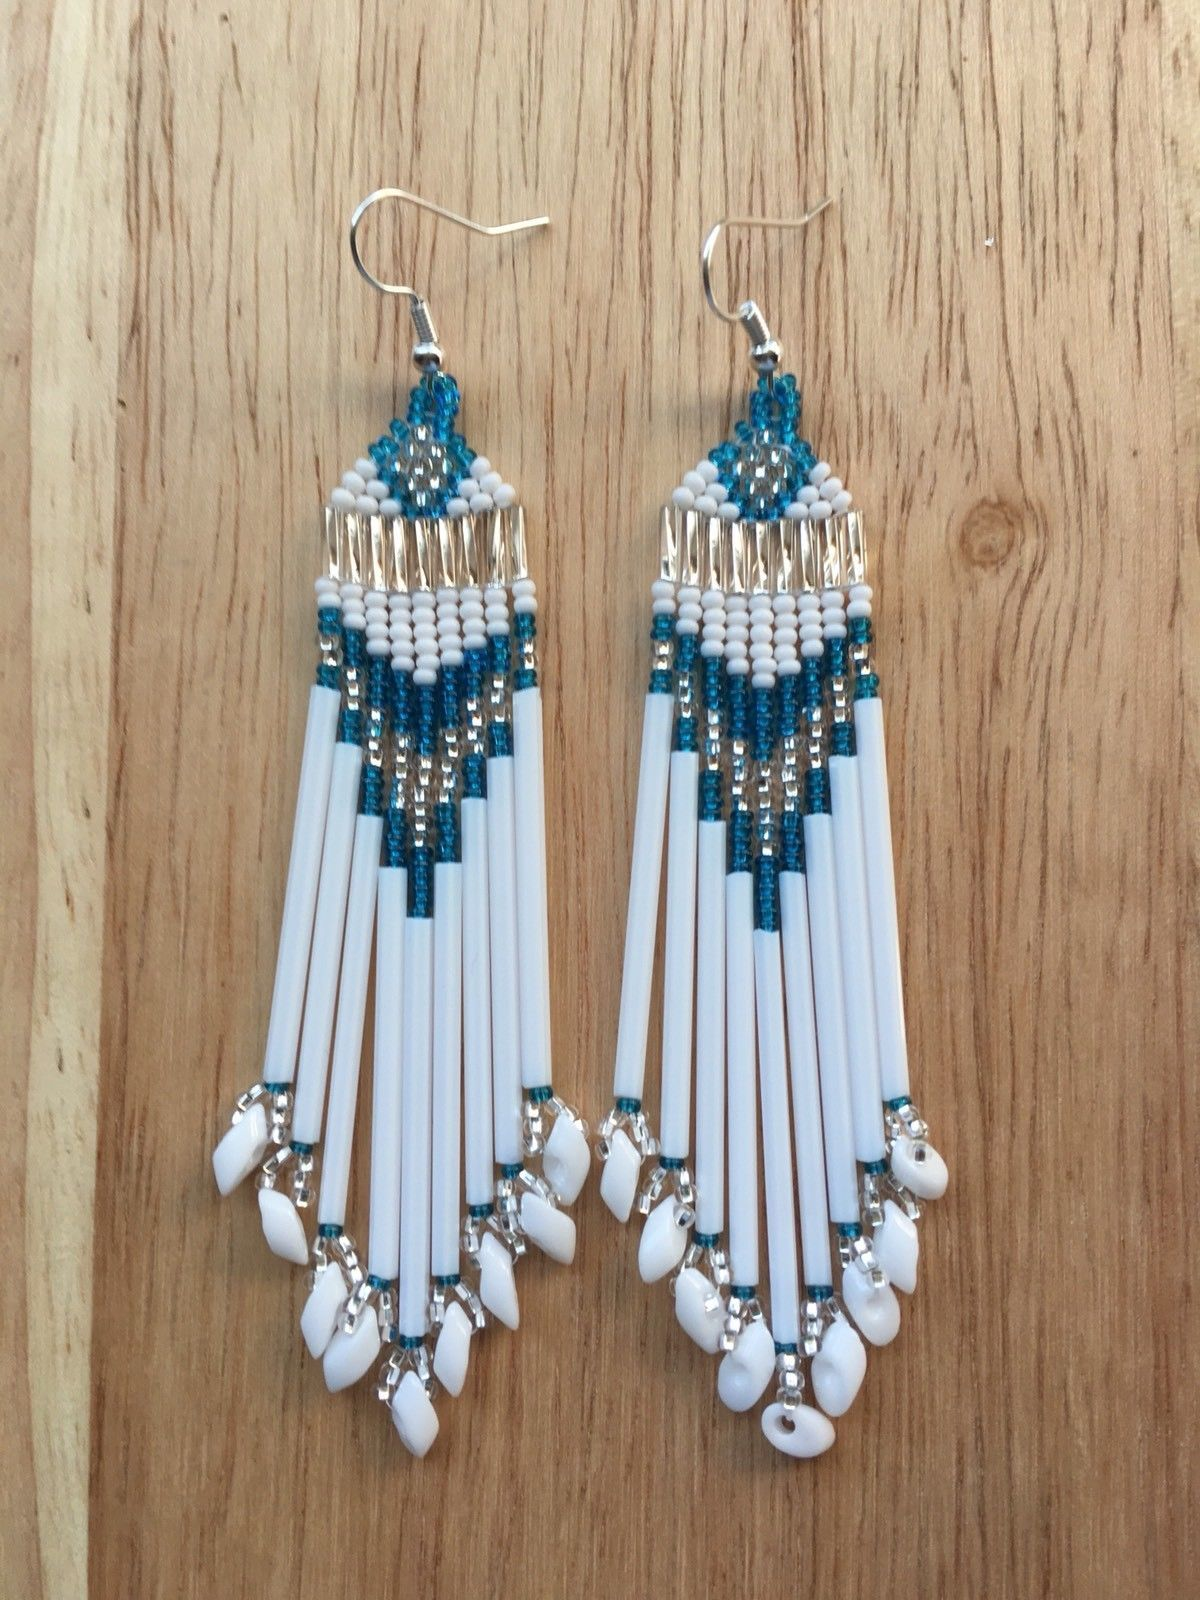 "Native American Style 4"" Long Beaded Earrings • 13.99"